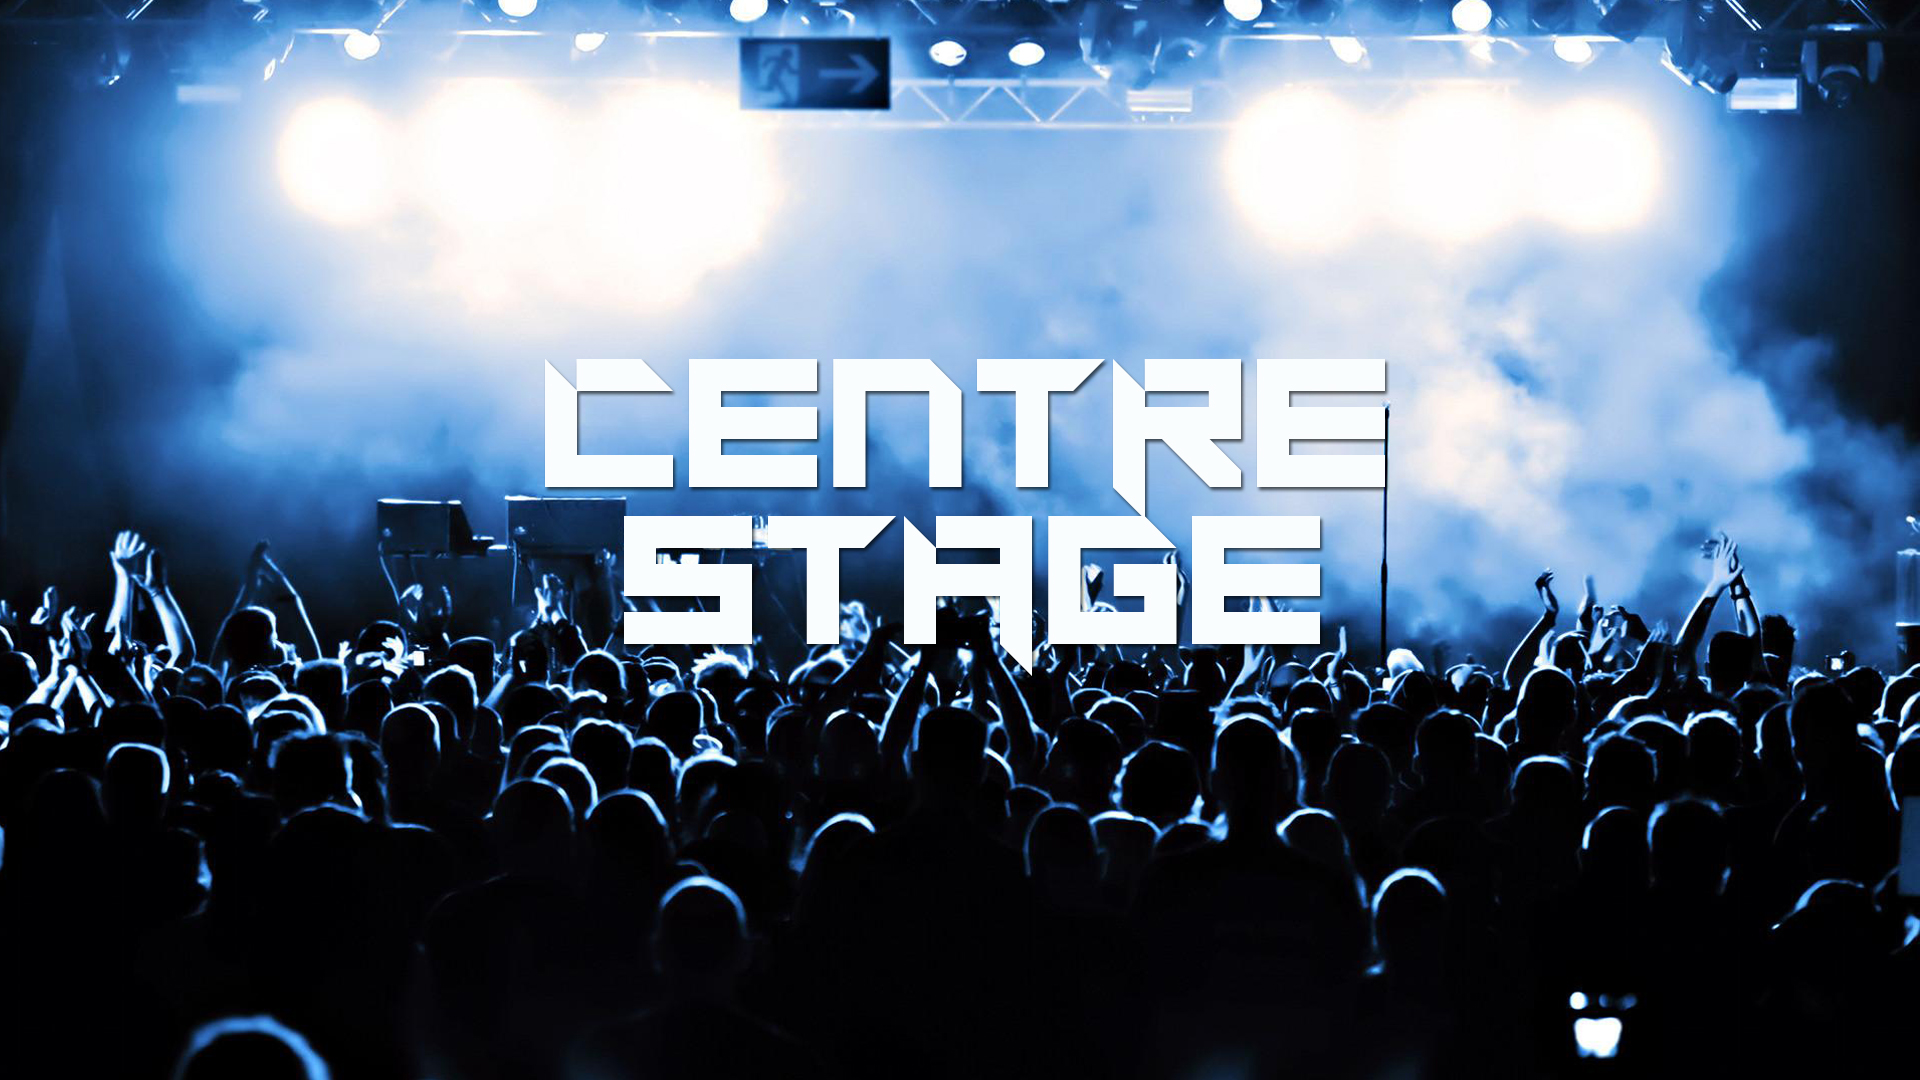 The 1945Centre Stage area will play eclectic tunes of live music performances throughout the event featuring DJs, acoustics, live band and live stage singing and dance performances.